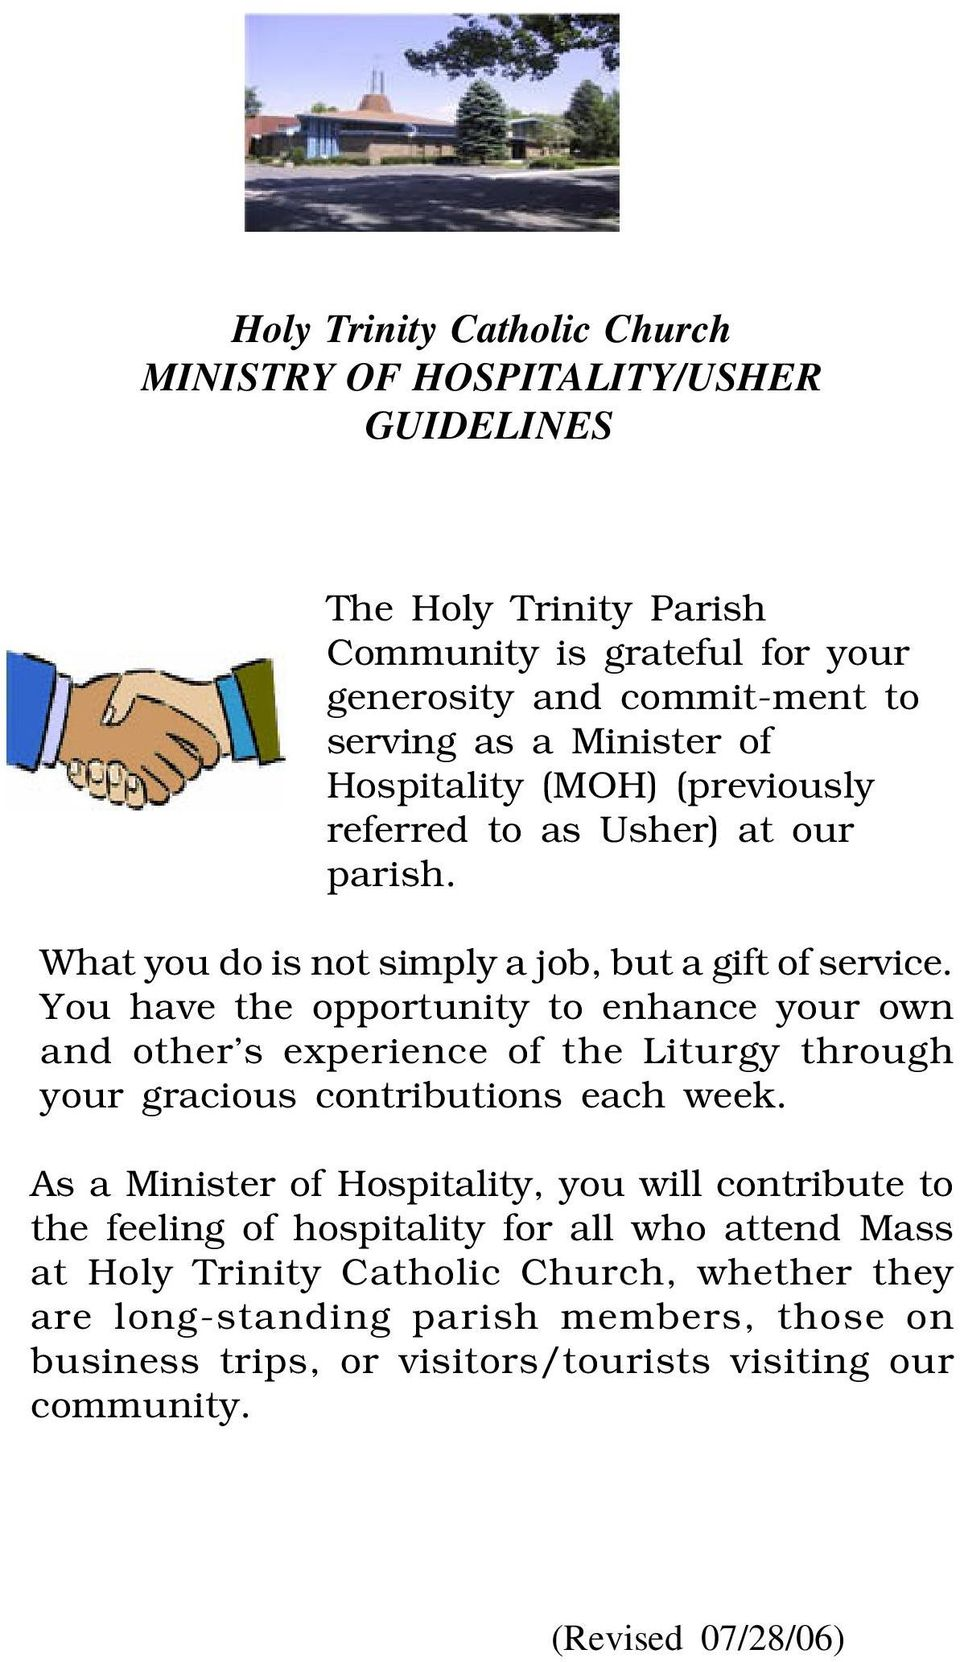 You have the opportunity to enhance your own and other s experience of the Liturgy through your gracious contributions each week.